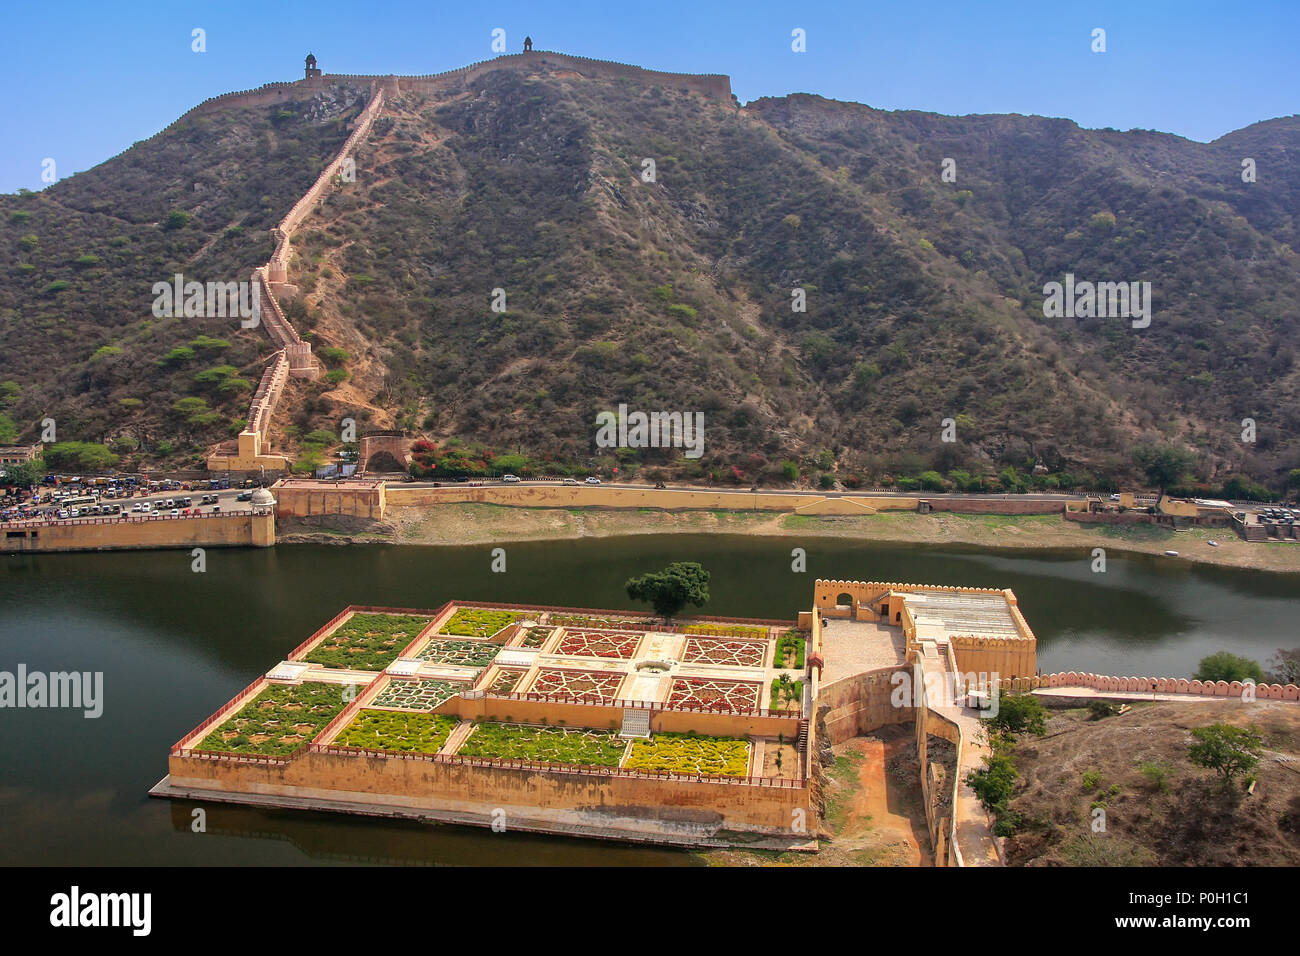 View of Kesar Kyari (Saffron Garden) on Maota Lake from Amber Fort, Rajasthan, India. Amber Fort is the main tourist attraction in the Jaipur area. - Stock Image